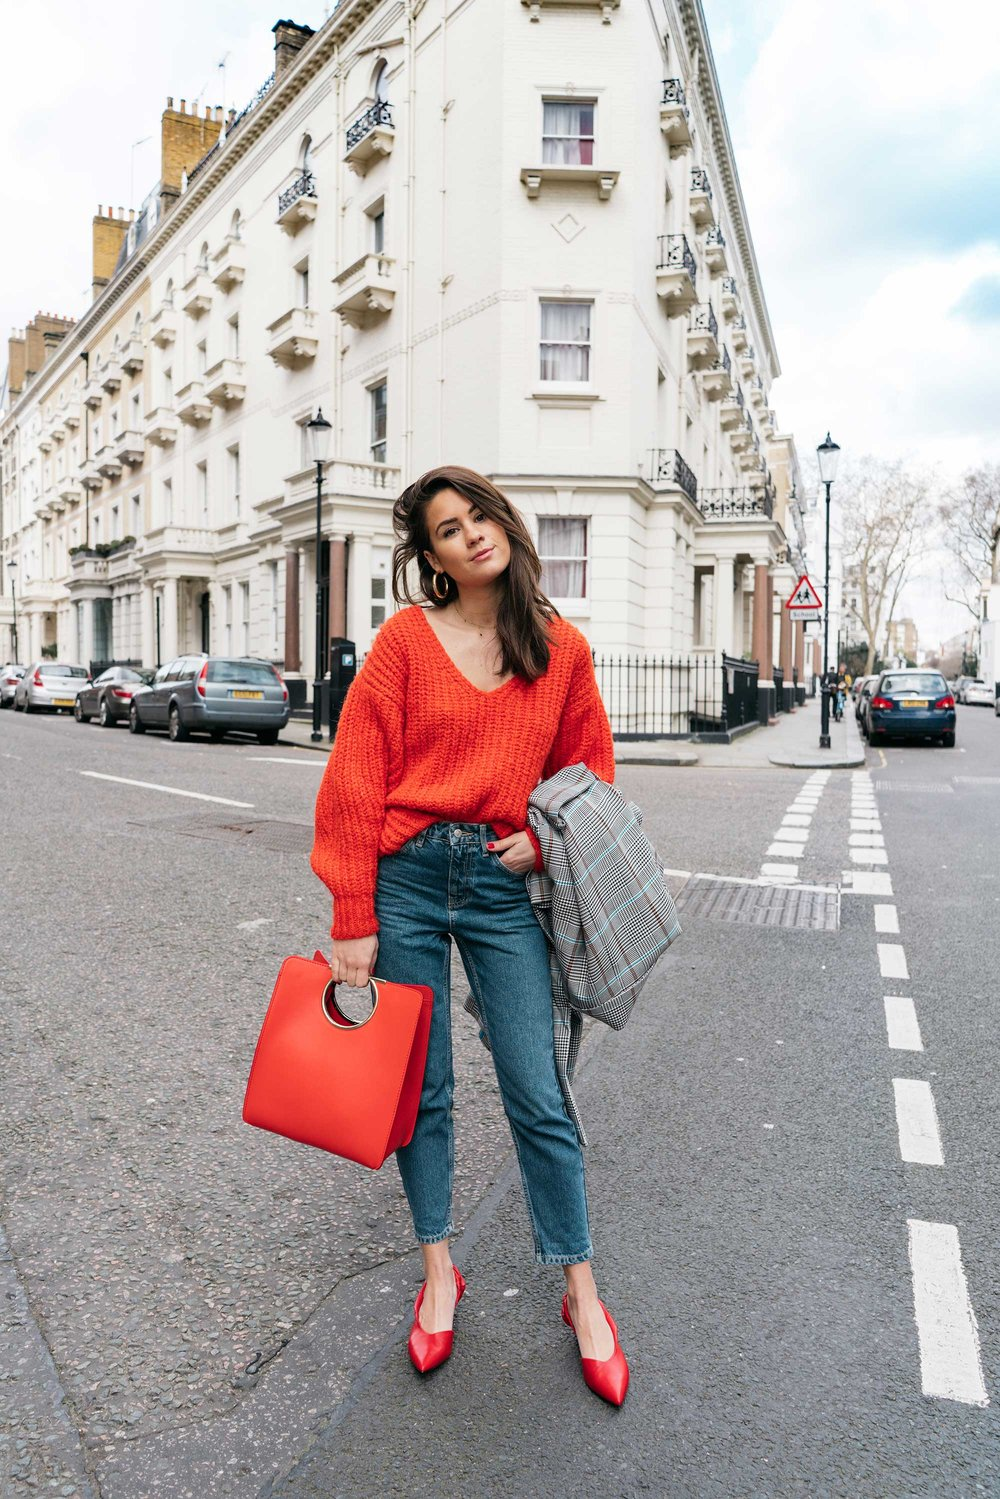 Lightweight-Check-Coat,-Salvatore-Ferragamo-Red-Leather-Tote,--Mom-jeans,-London-Fall-Outfit-Red-Accessories-13.jpg